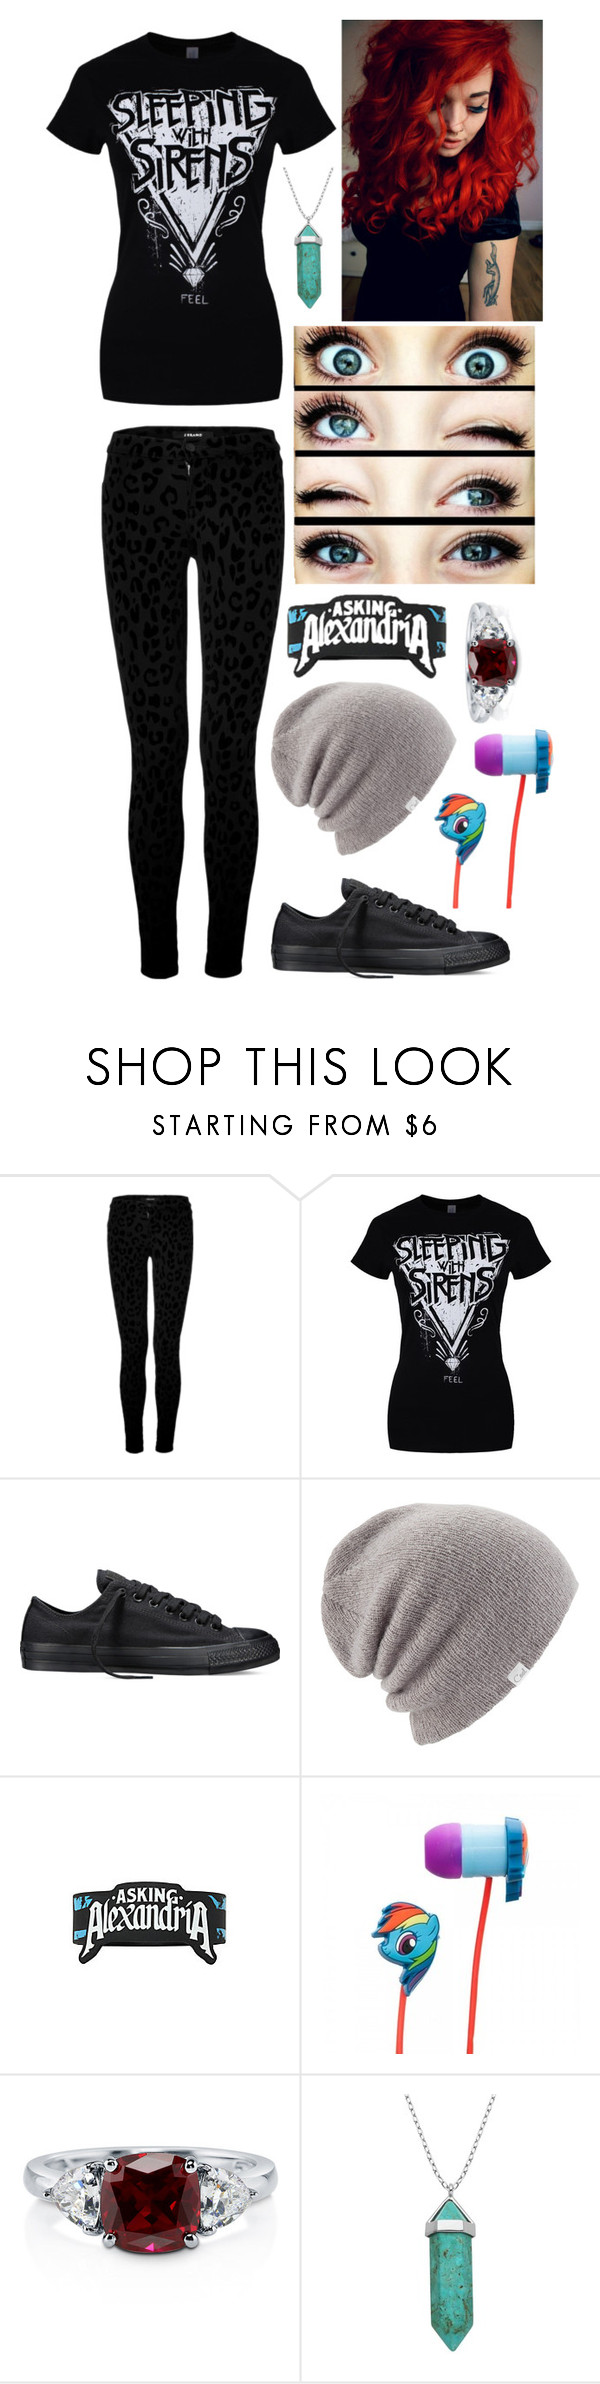 """Alyssa McAnderson"" by dreaming-of-death ❤ liked on Polyvore featuring J Brand, Converse, Coal, My Little Pony, BERRICLE, BEA and Lord & Taylor"